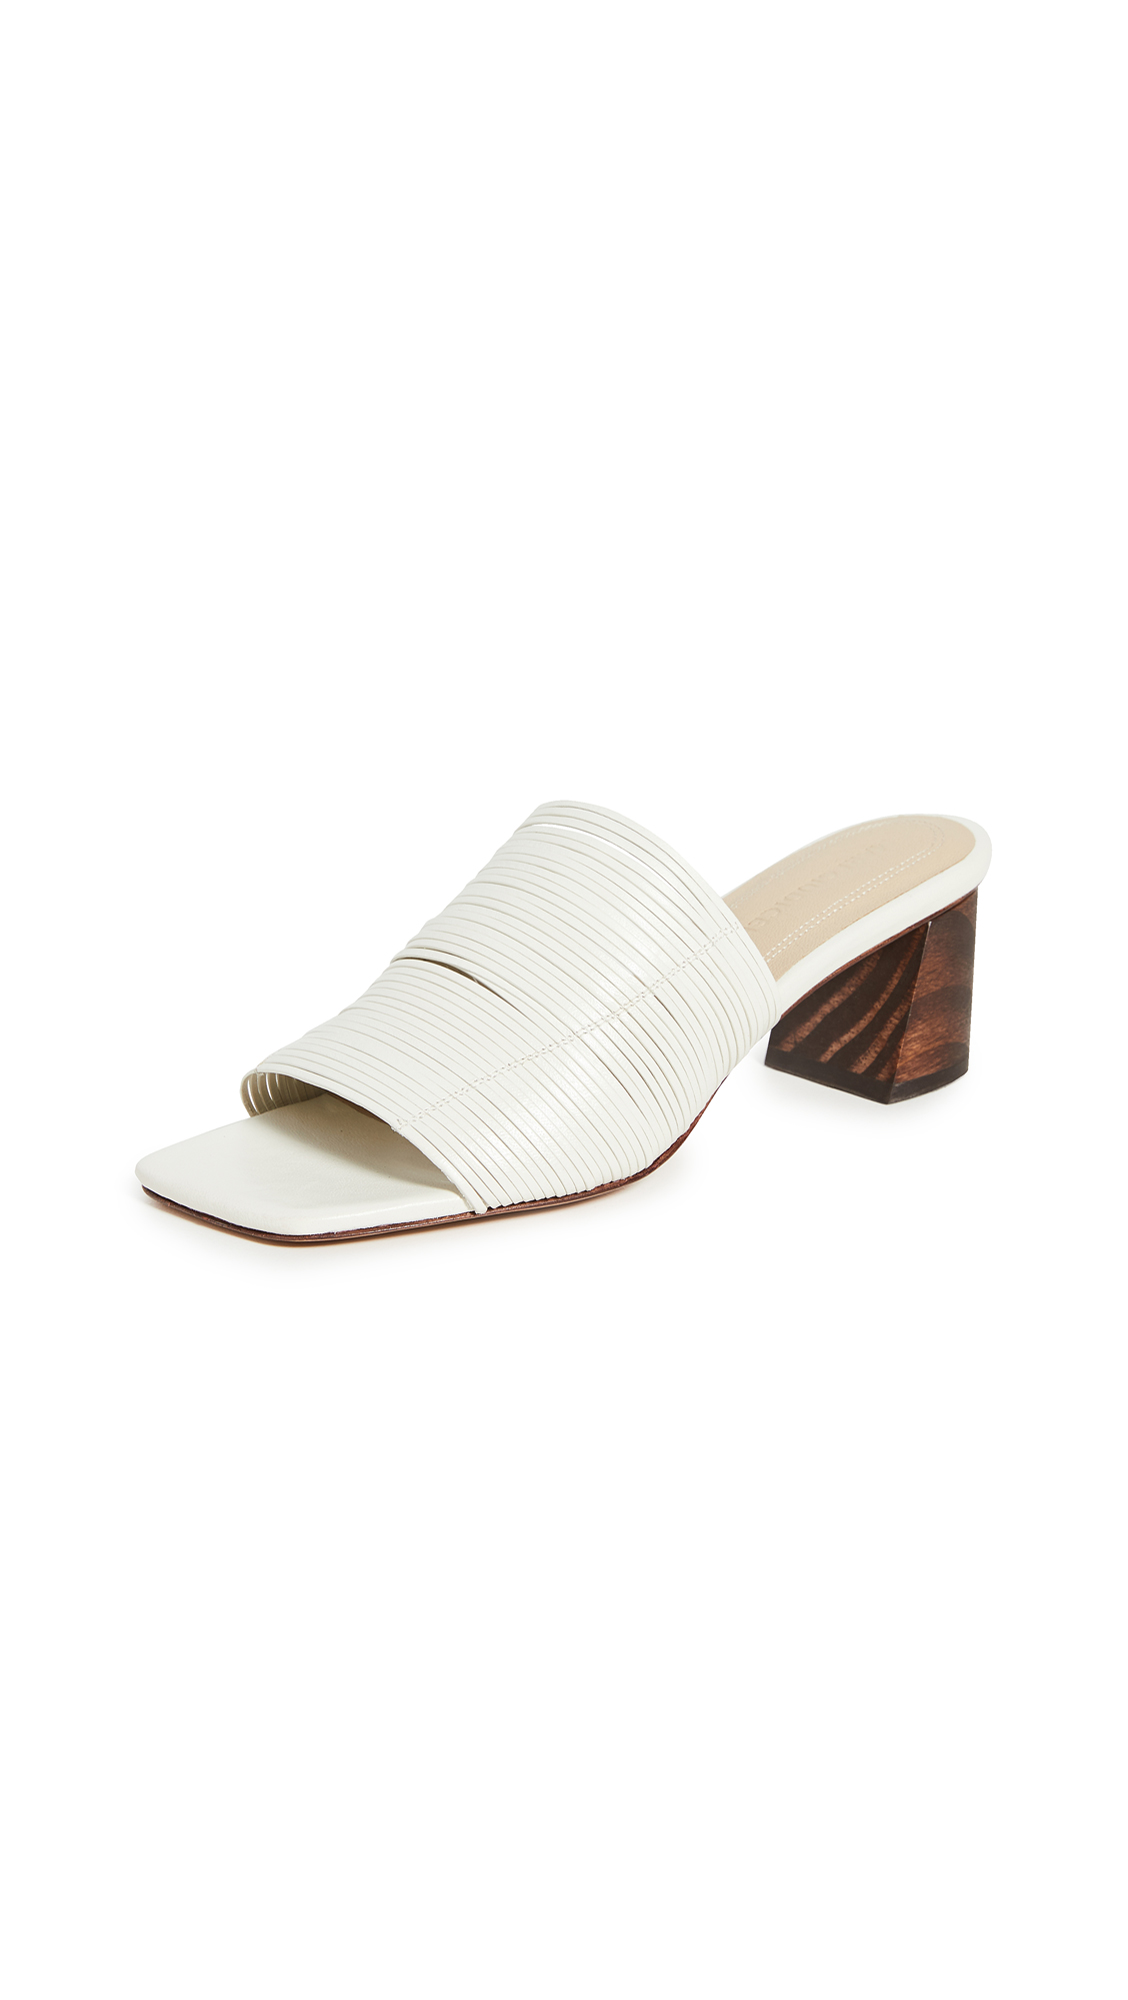 Mari Giudicelli Gisele Sandals - 40% Off Sale